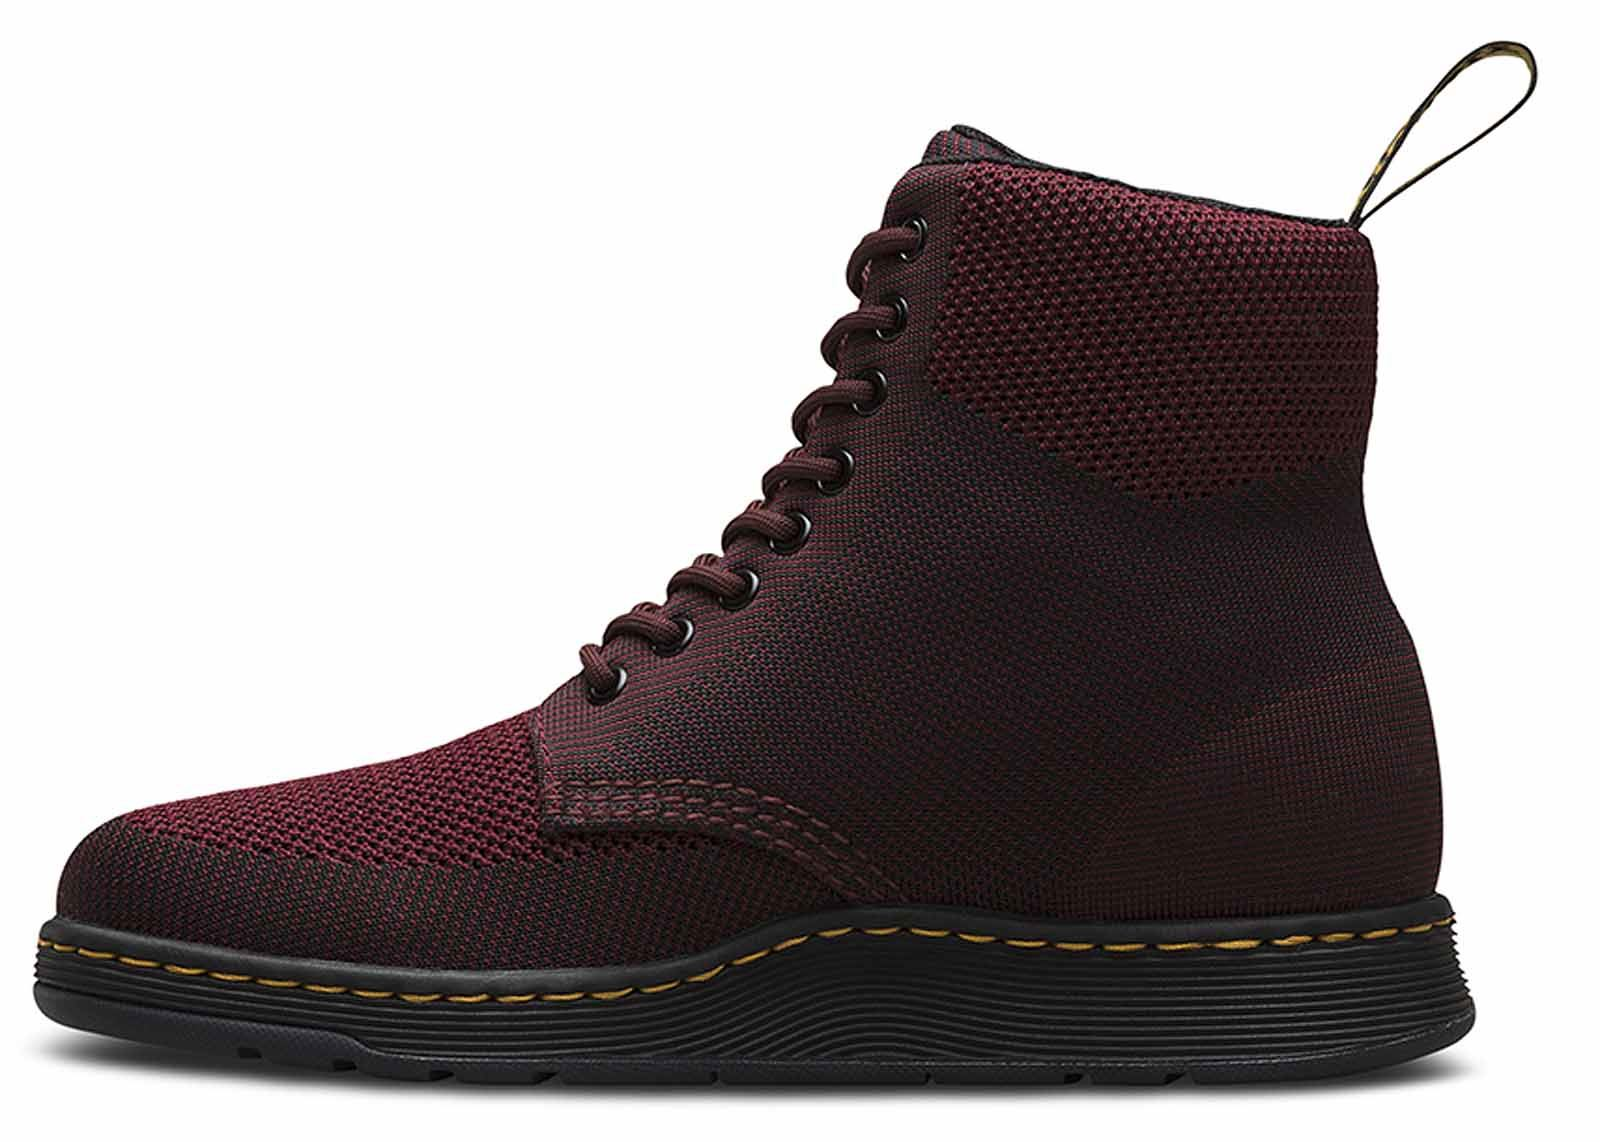 Dr Martens Rigal Knit Contemporary Boots Super Comfy 1460 Ankle Boots Contemporary e8d636